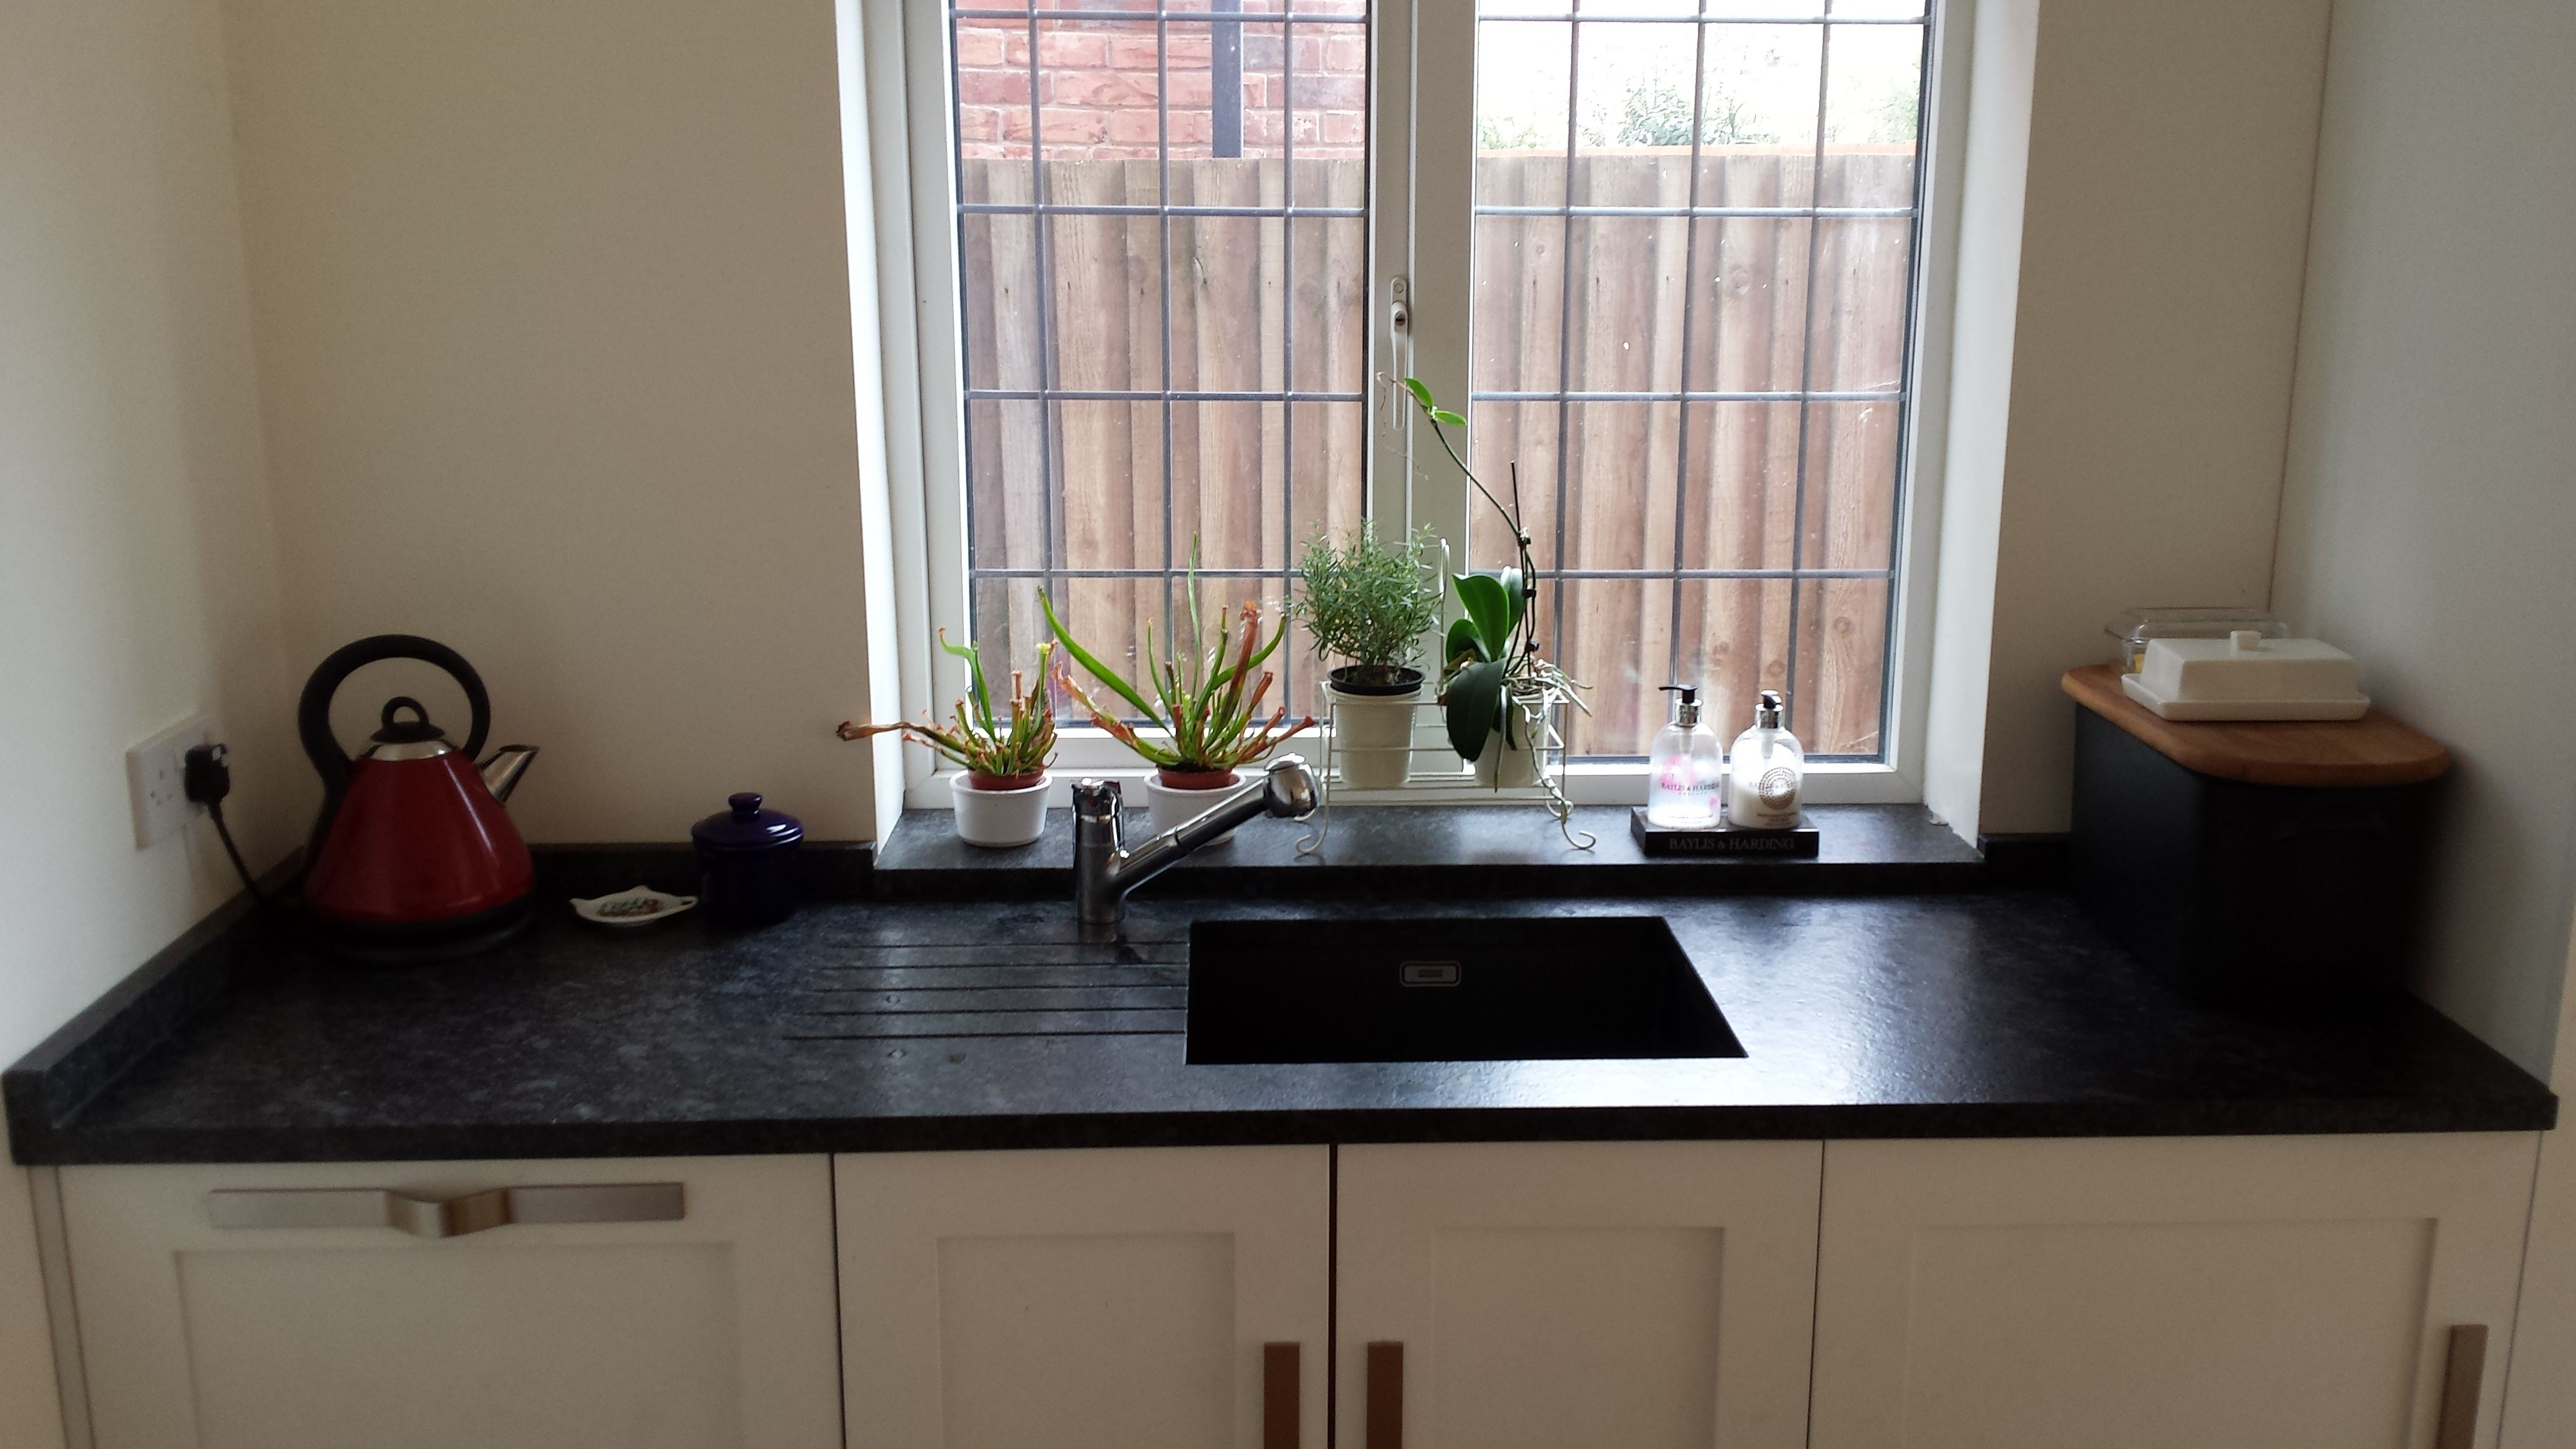 Our customer was delighted with this Steel Grey worktop